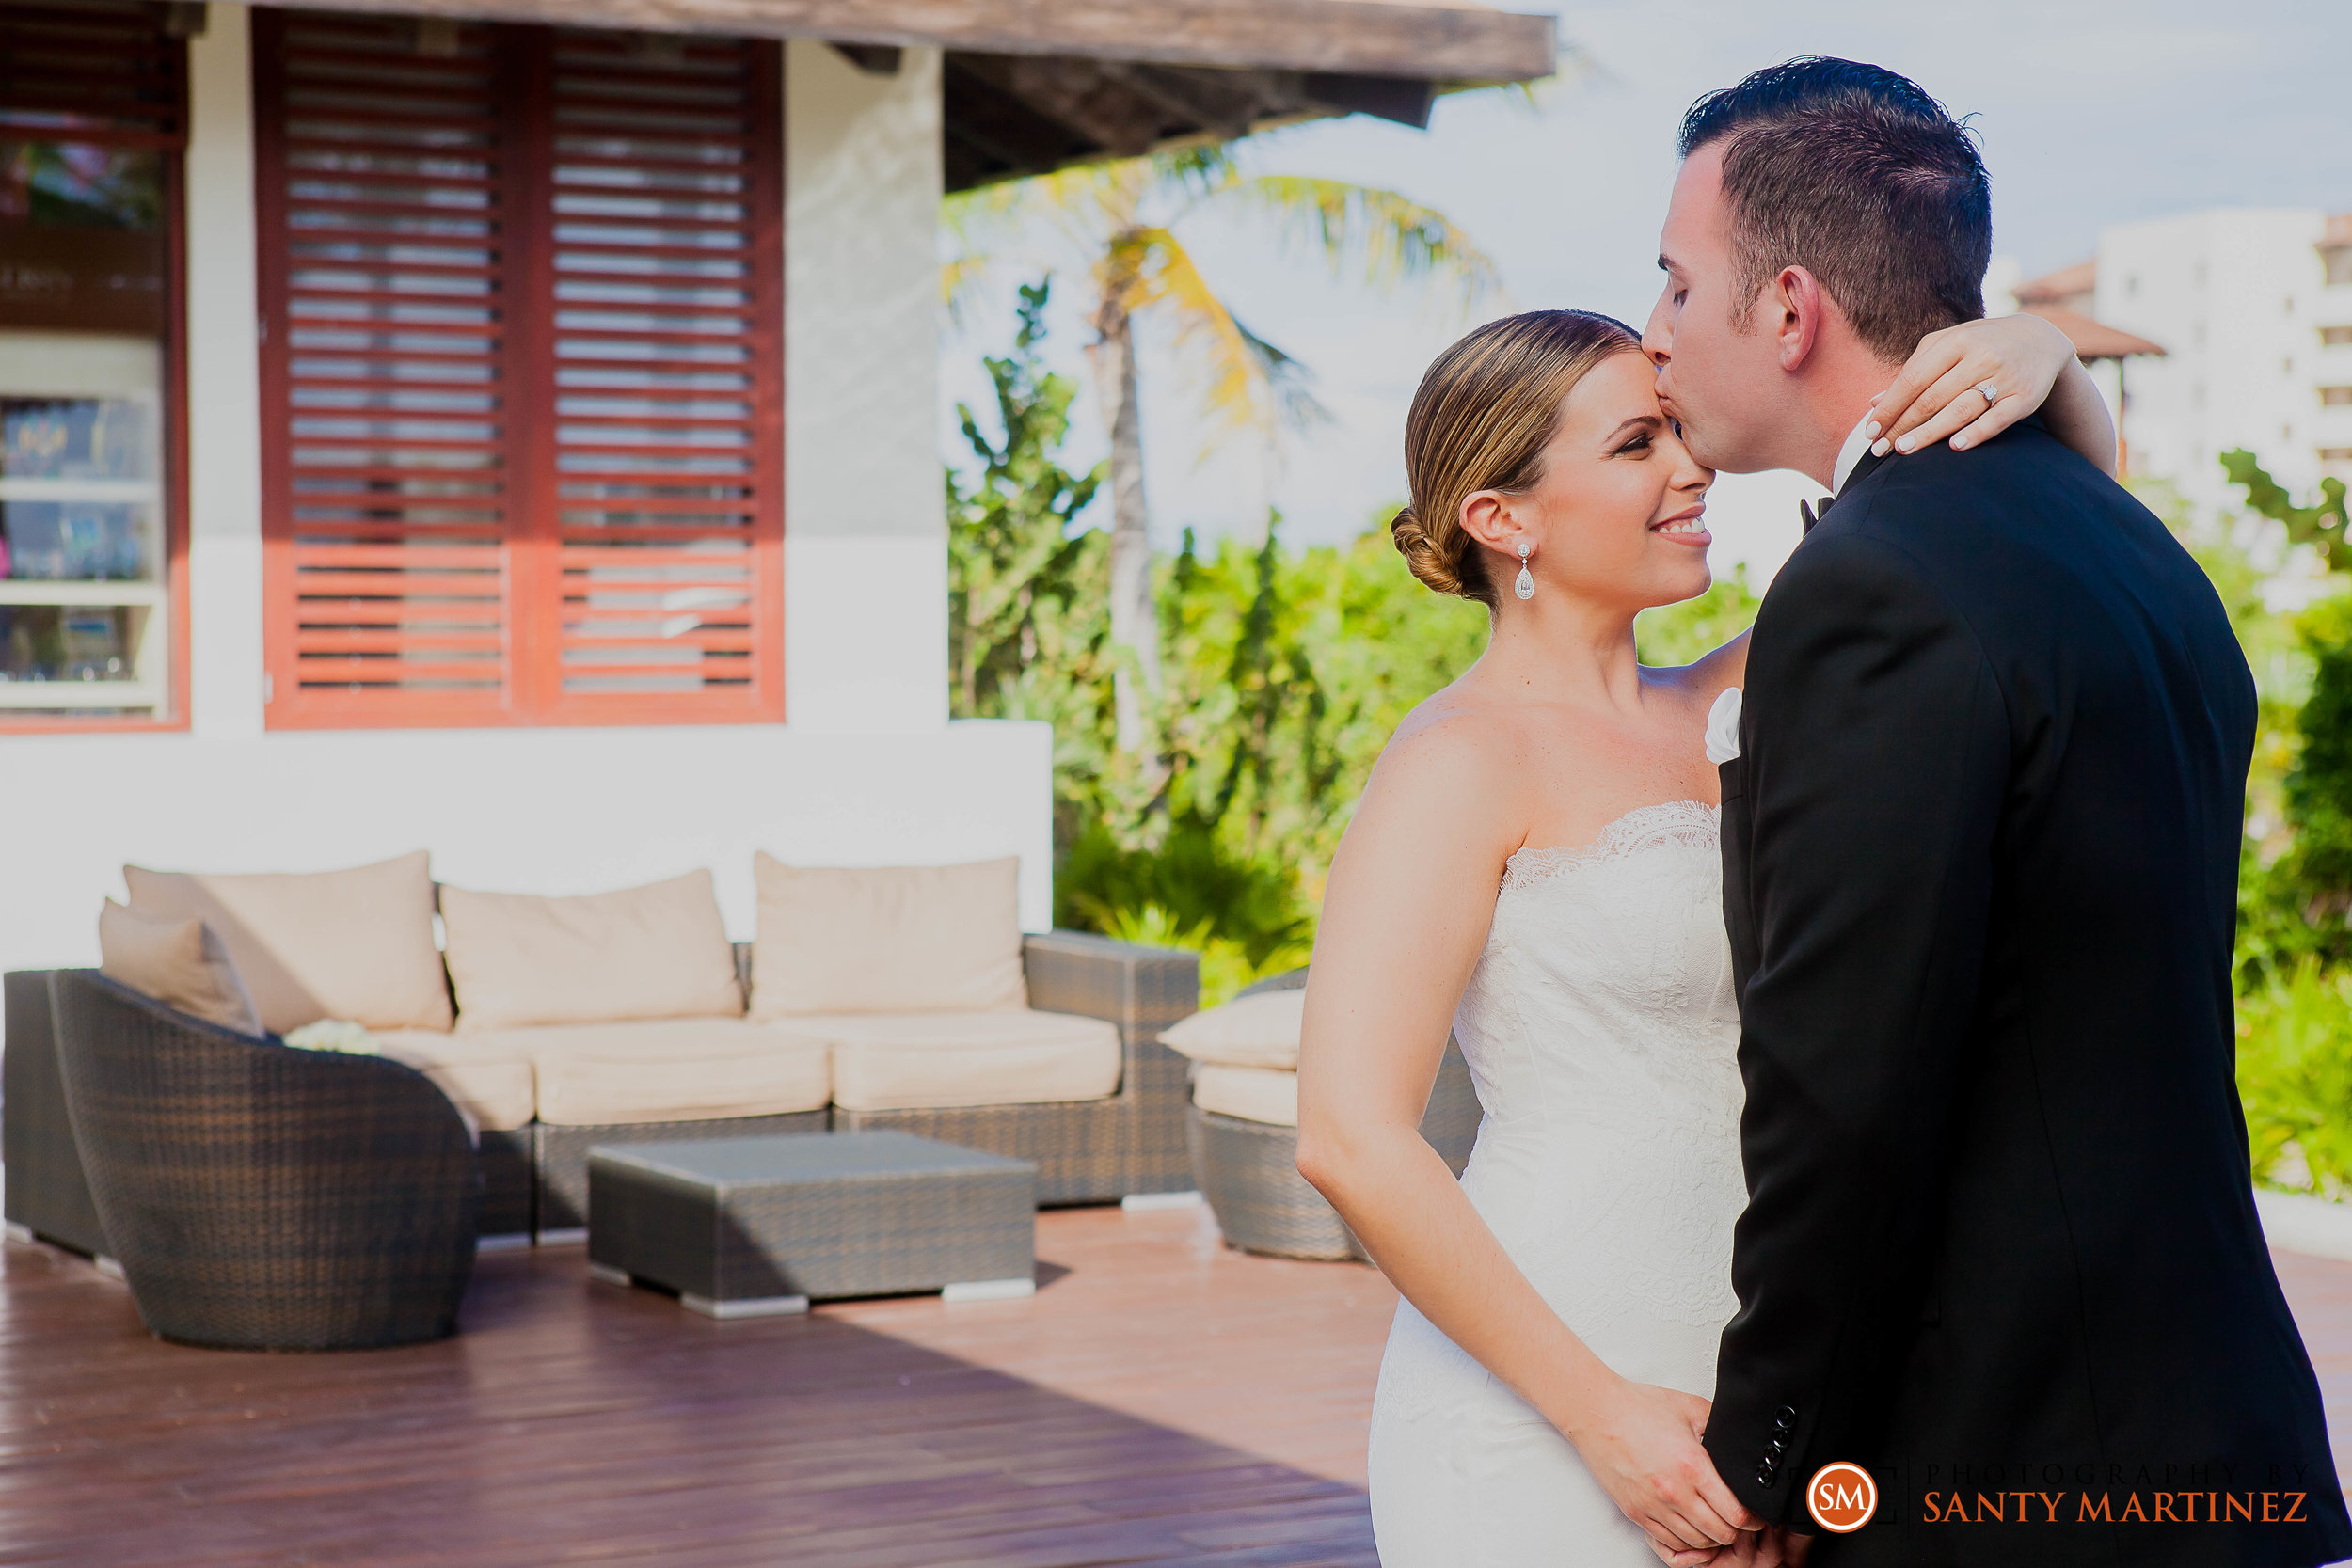 Secrets Playa Mujeres Weddings - Photography by Santy Martinez--11.jpg